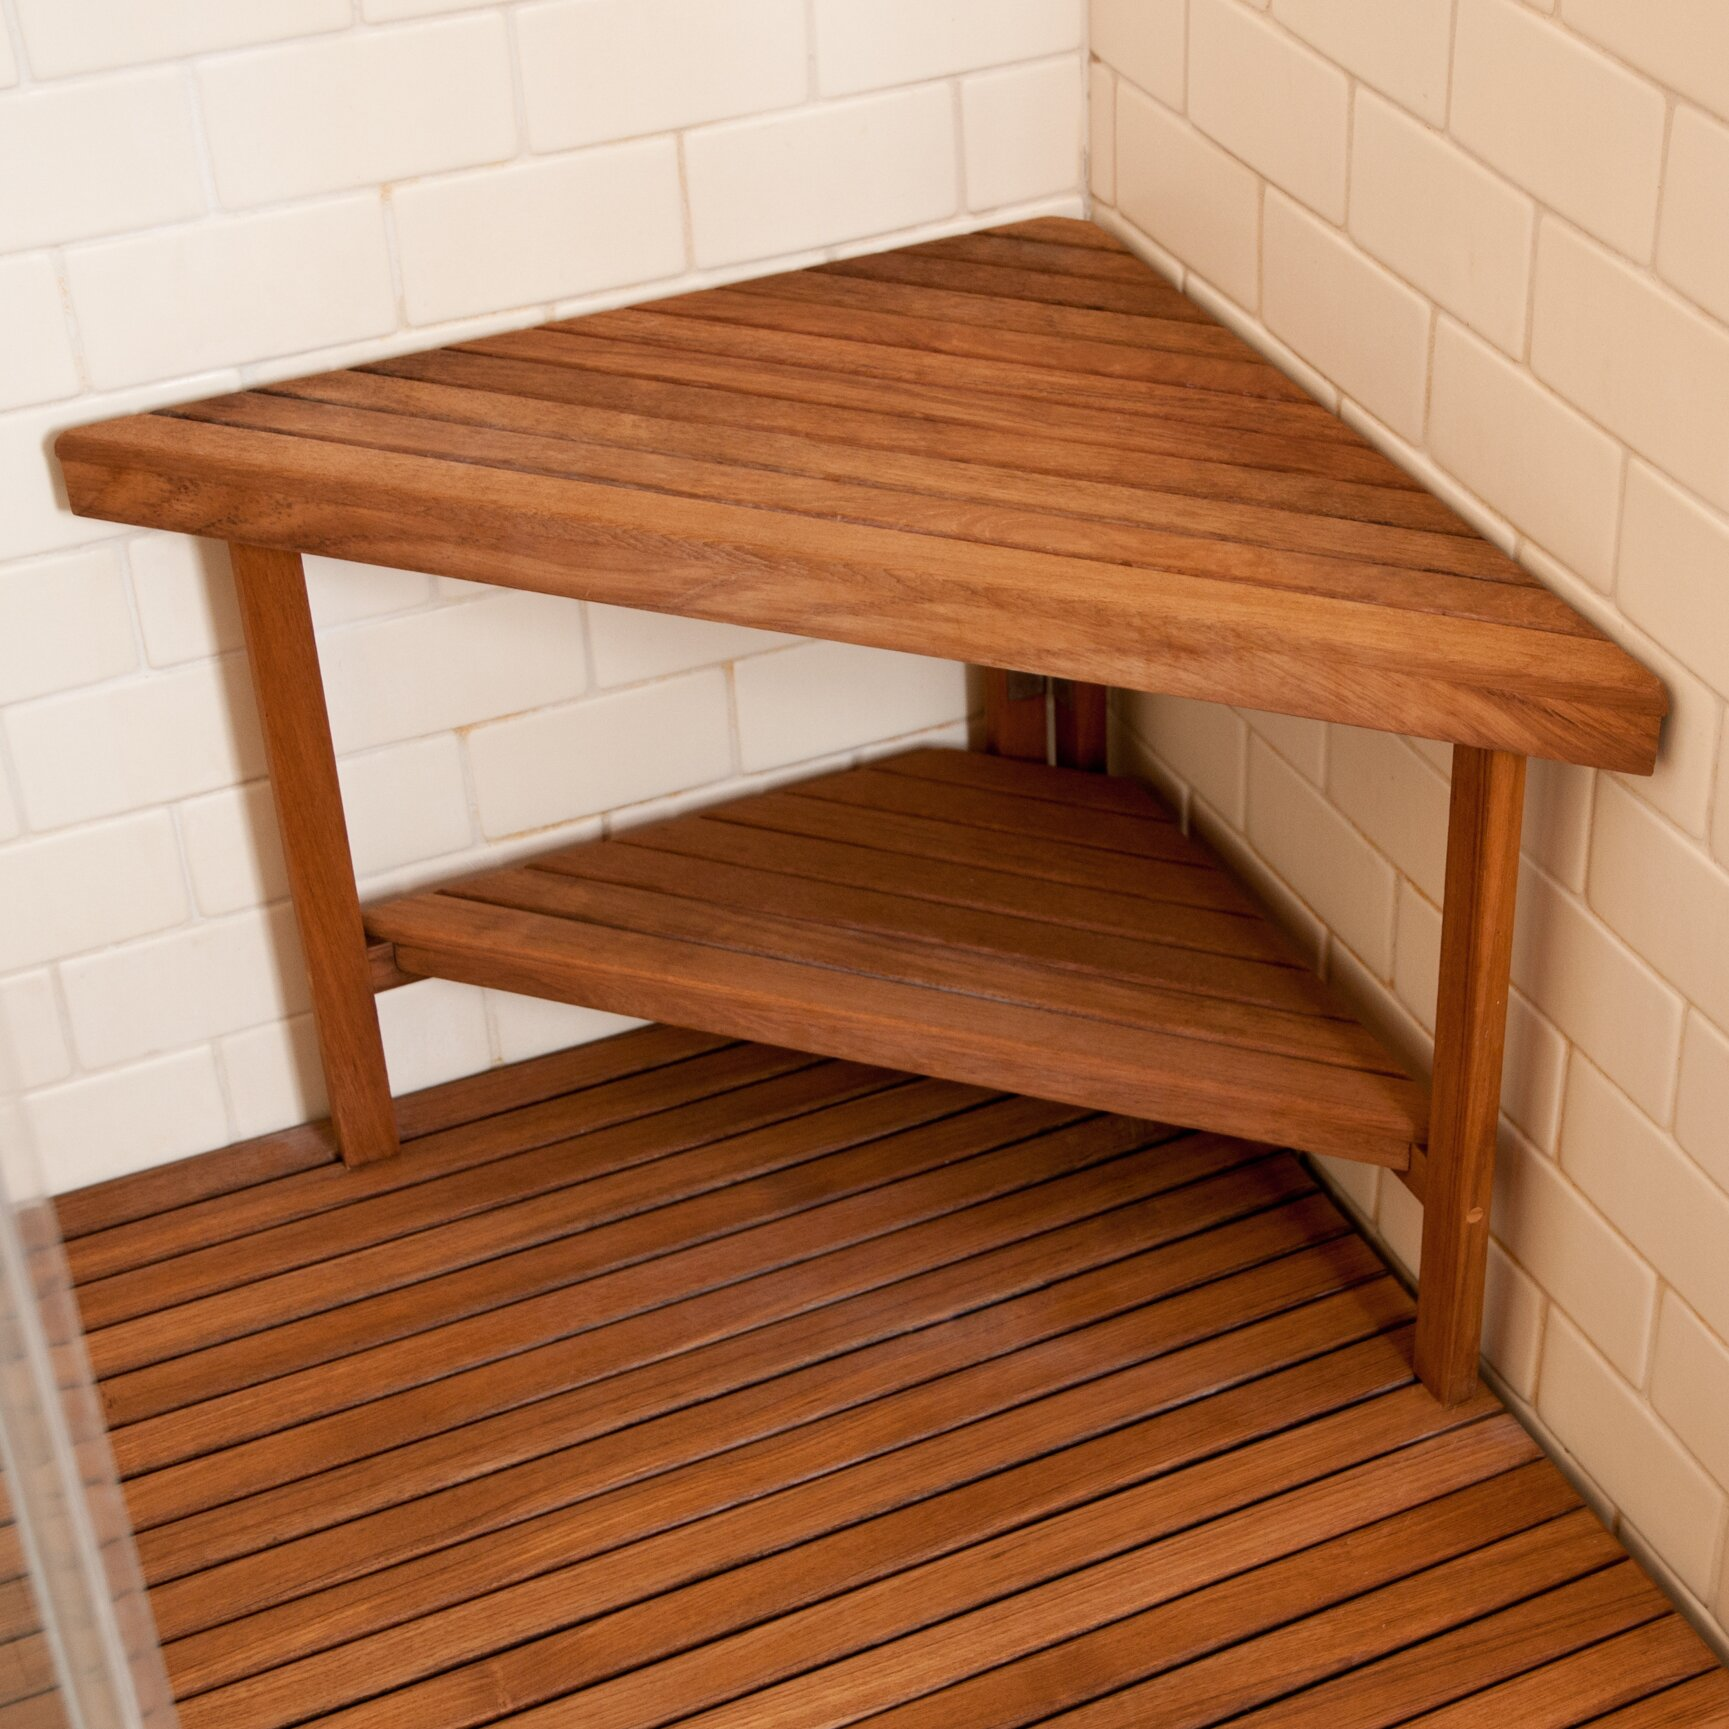 Teakworks4u deluxe teak corner shower bench with optional shelf reviews wayfair Bench with shelf